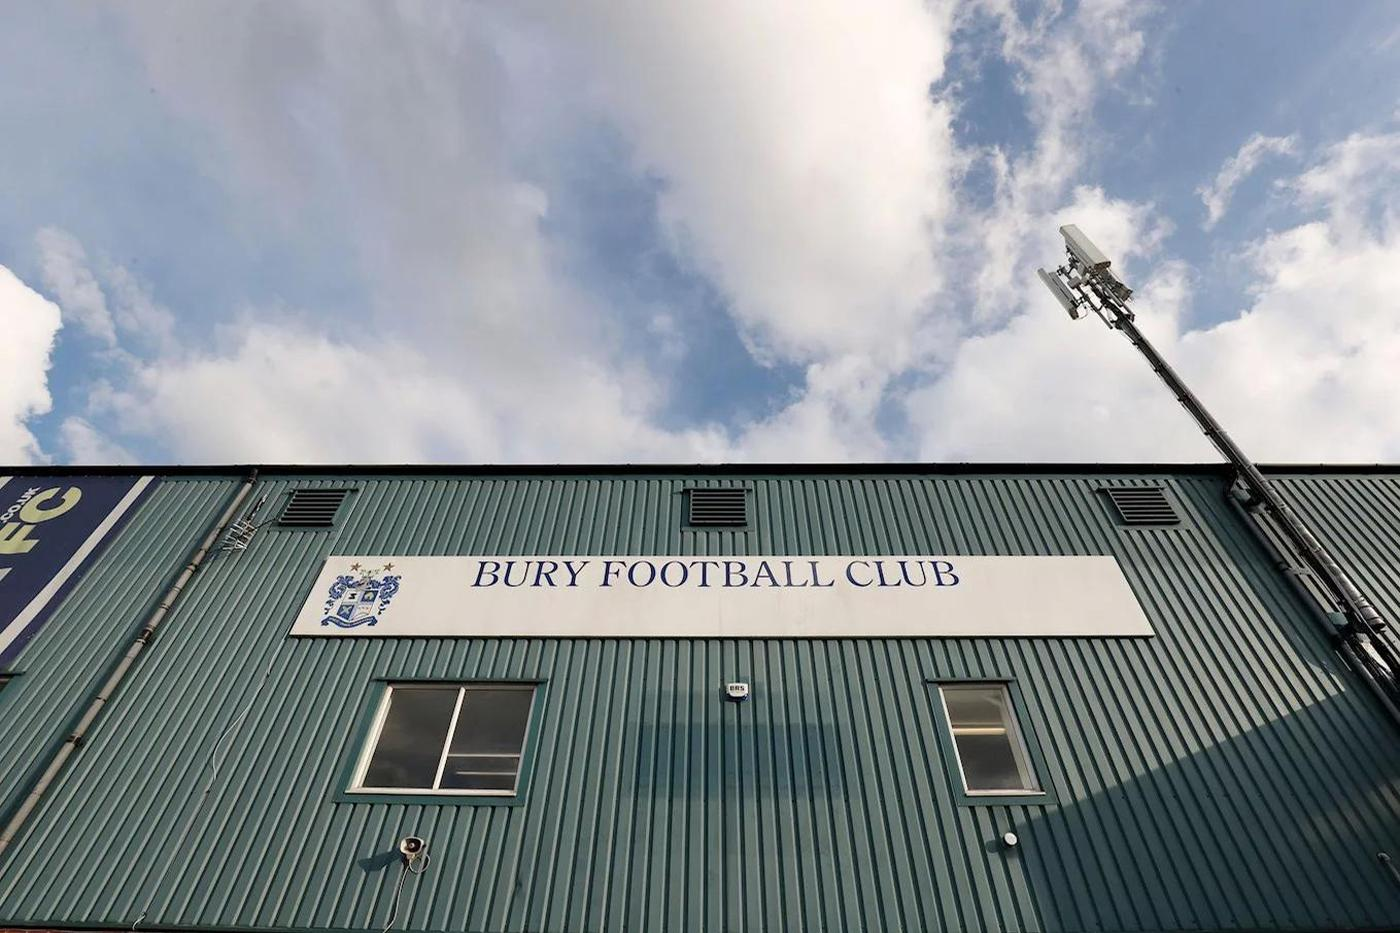 Bury is one of England's oldest football clubs and had been a member of the football league for 125 years